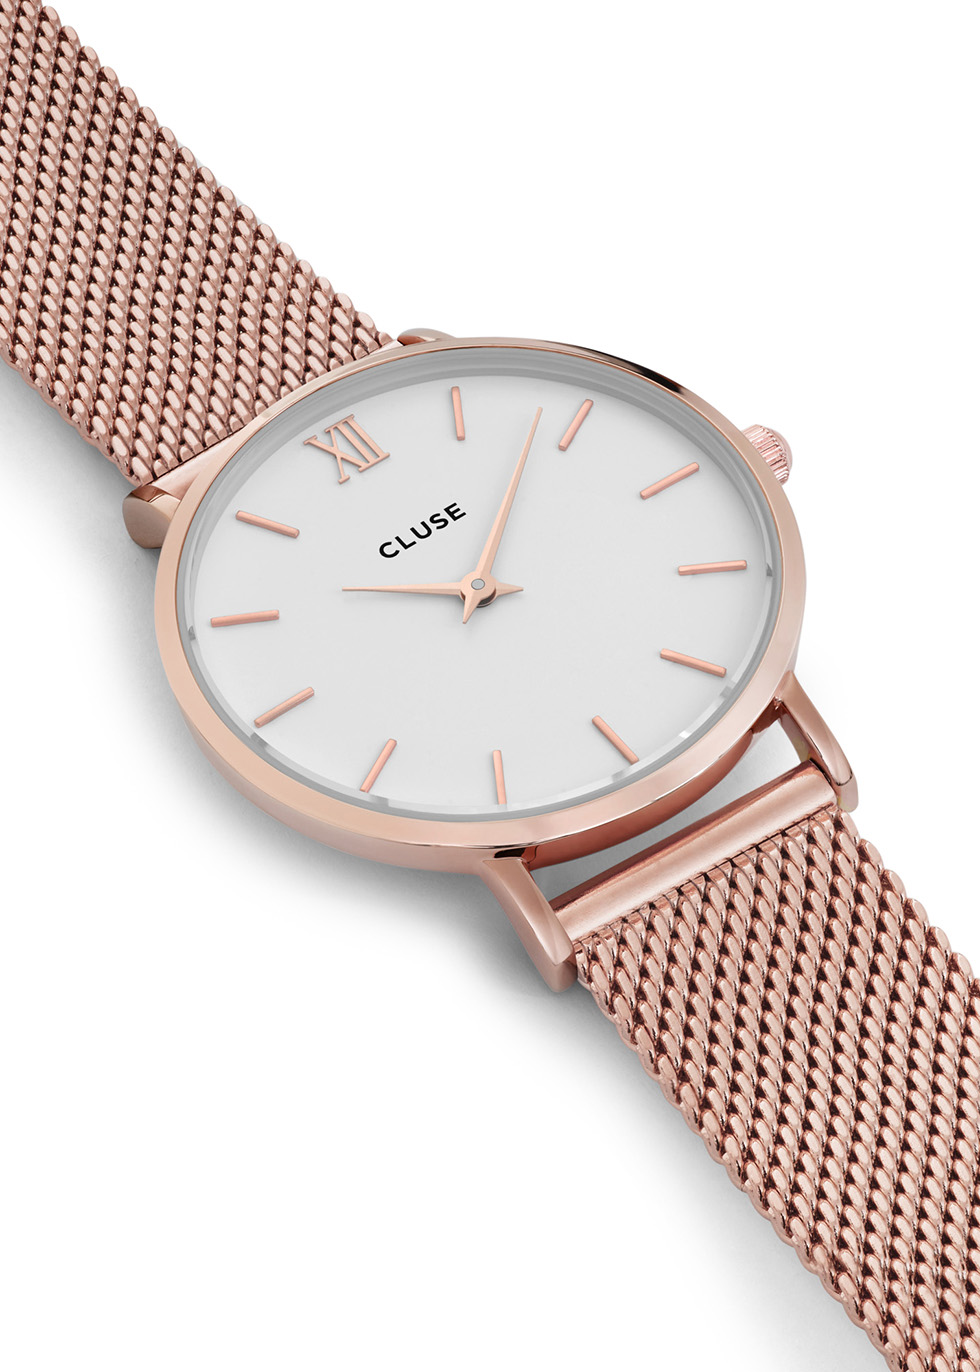 Minuit rose gold tone watch - CLUSE